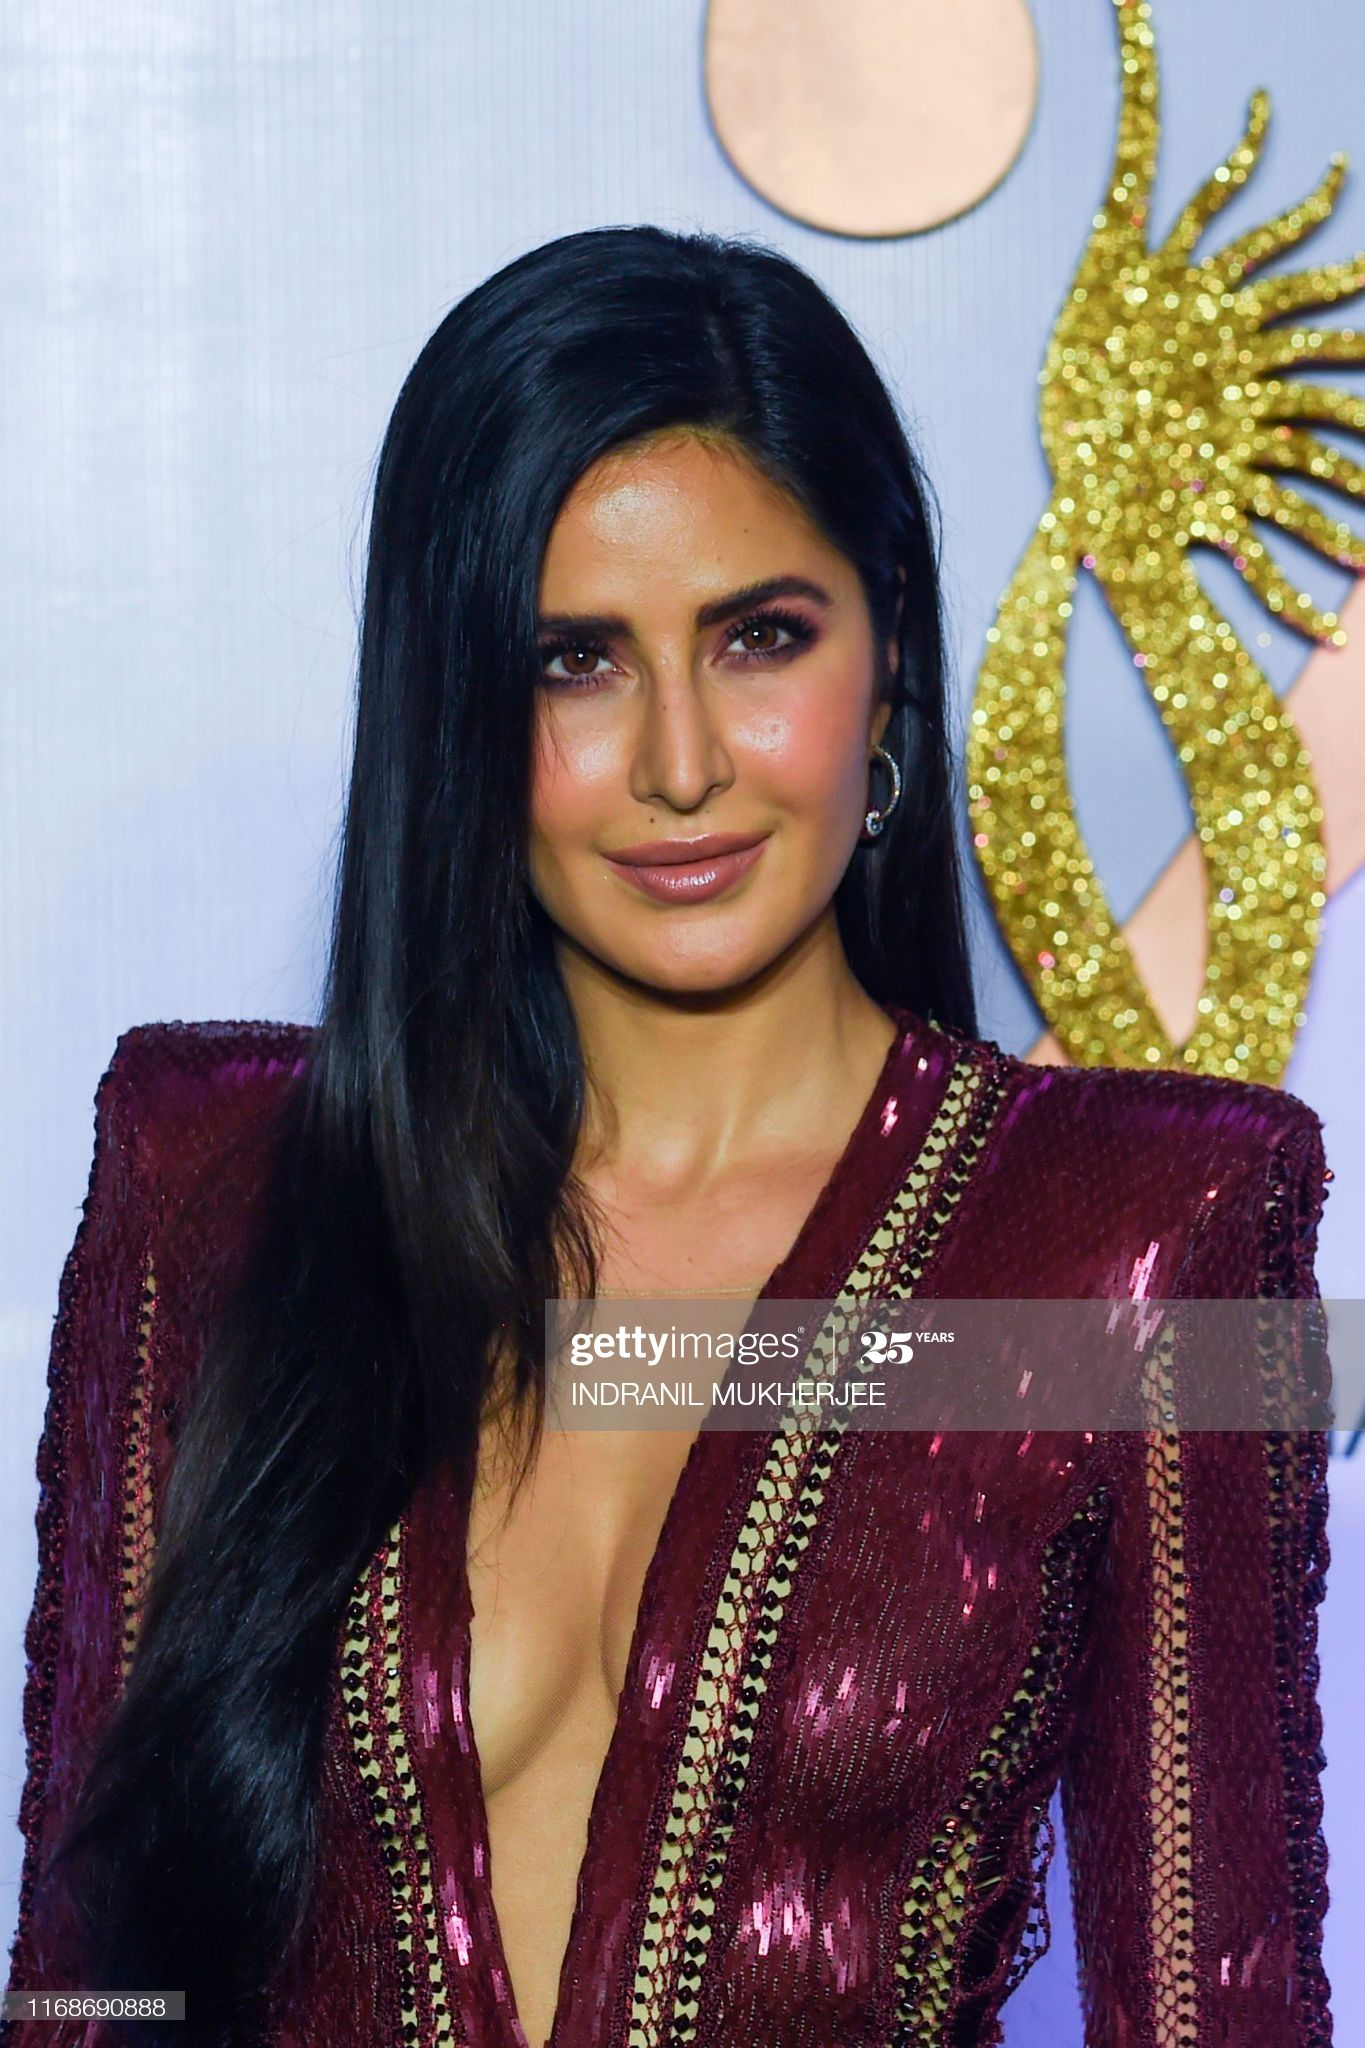 News Photo Bollywood Actress Katrina Kaif Arrives For The Katrina Kaif Photo Katrina Kaif Images Bollywood Actress